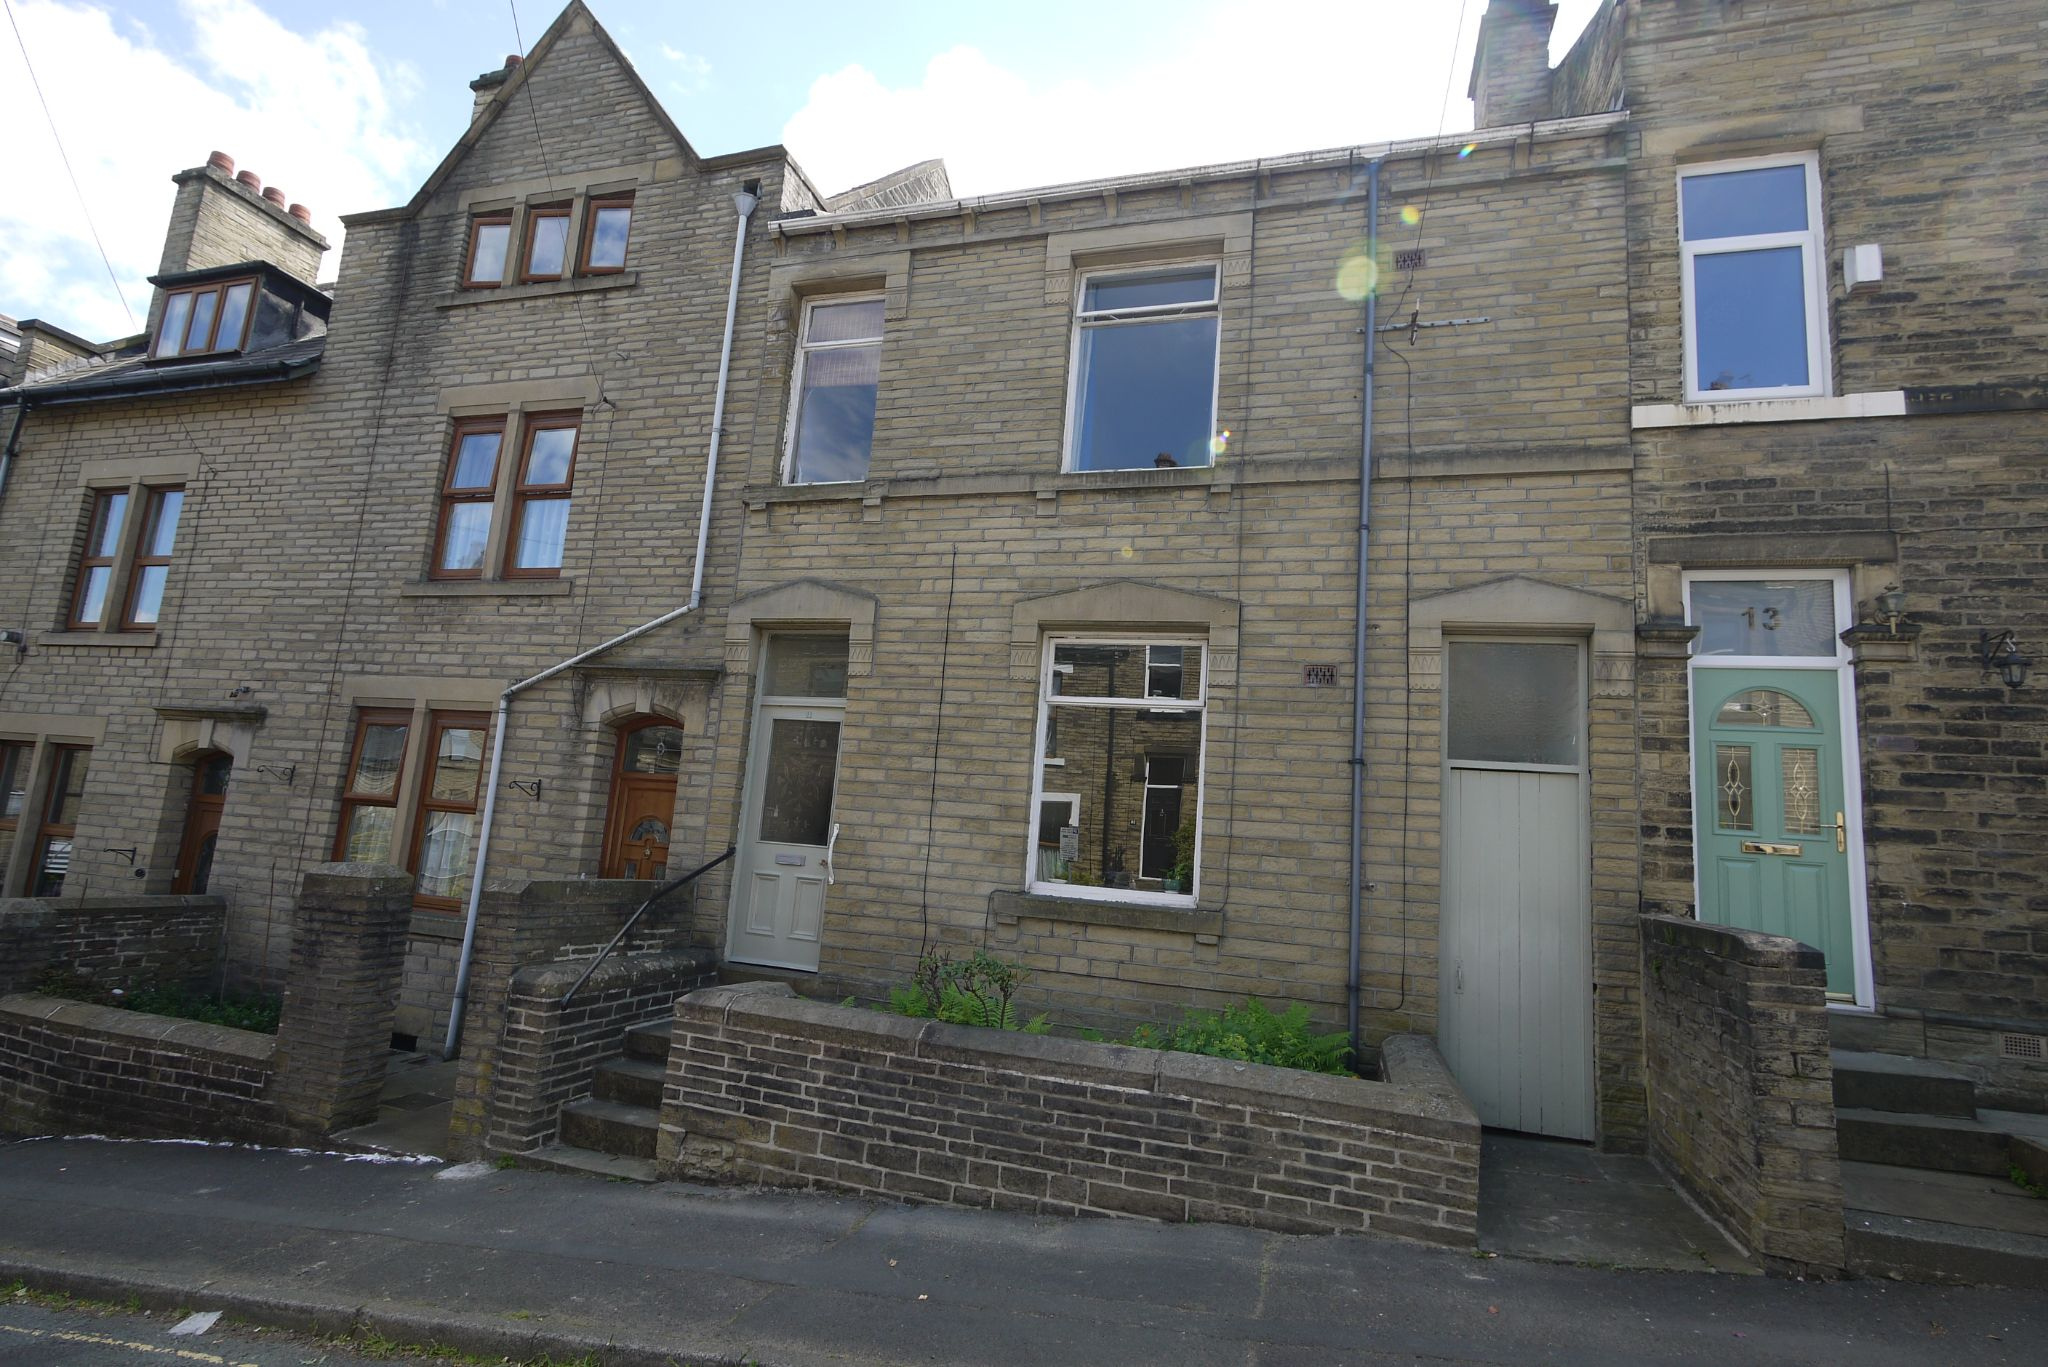 5 bedroom mid terraced house For Sale in Brighouse - Main.